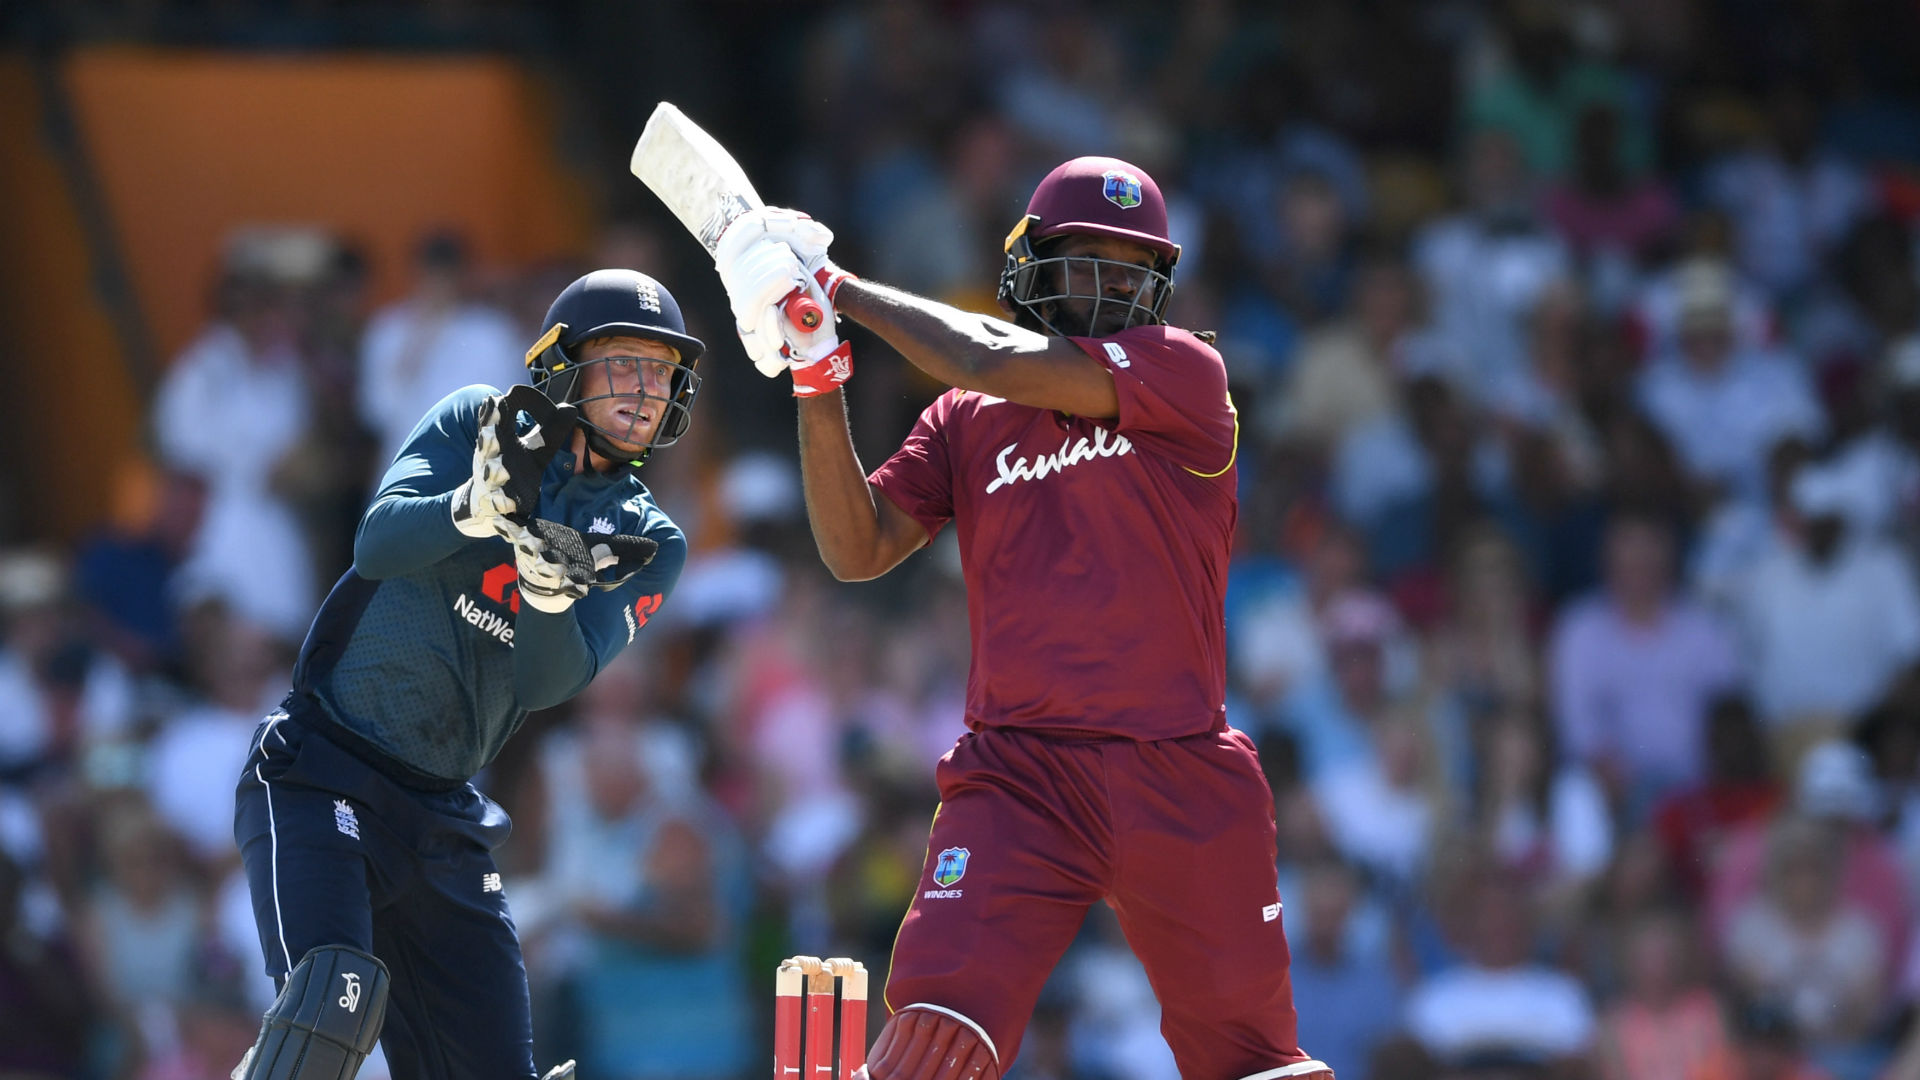 Chris Gayle's heroics see Wests Indies break record for number of sixes in an ODI innings